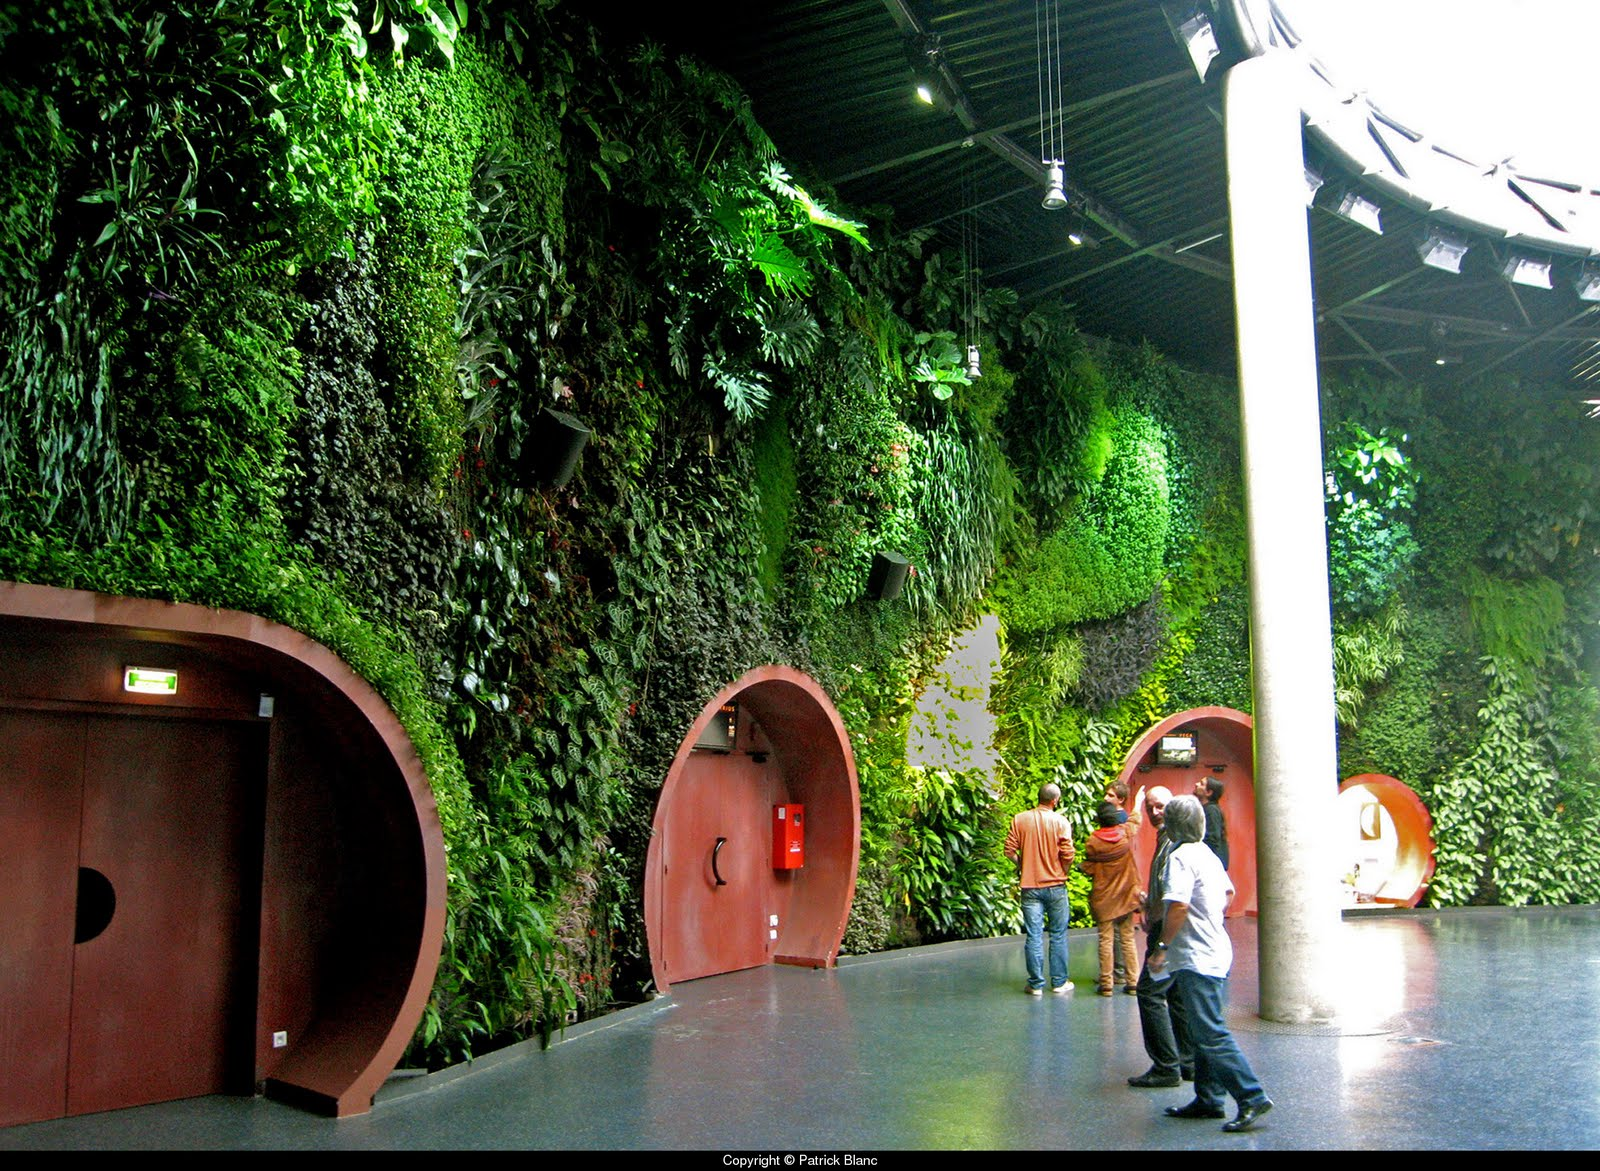 Vertikal Gardinen Growing Walls And Vertical Gardens The Work Of Patrick